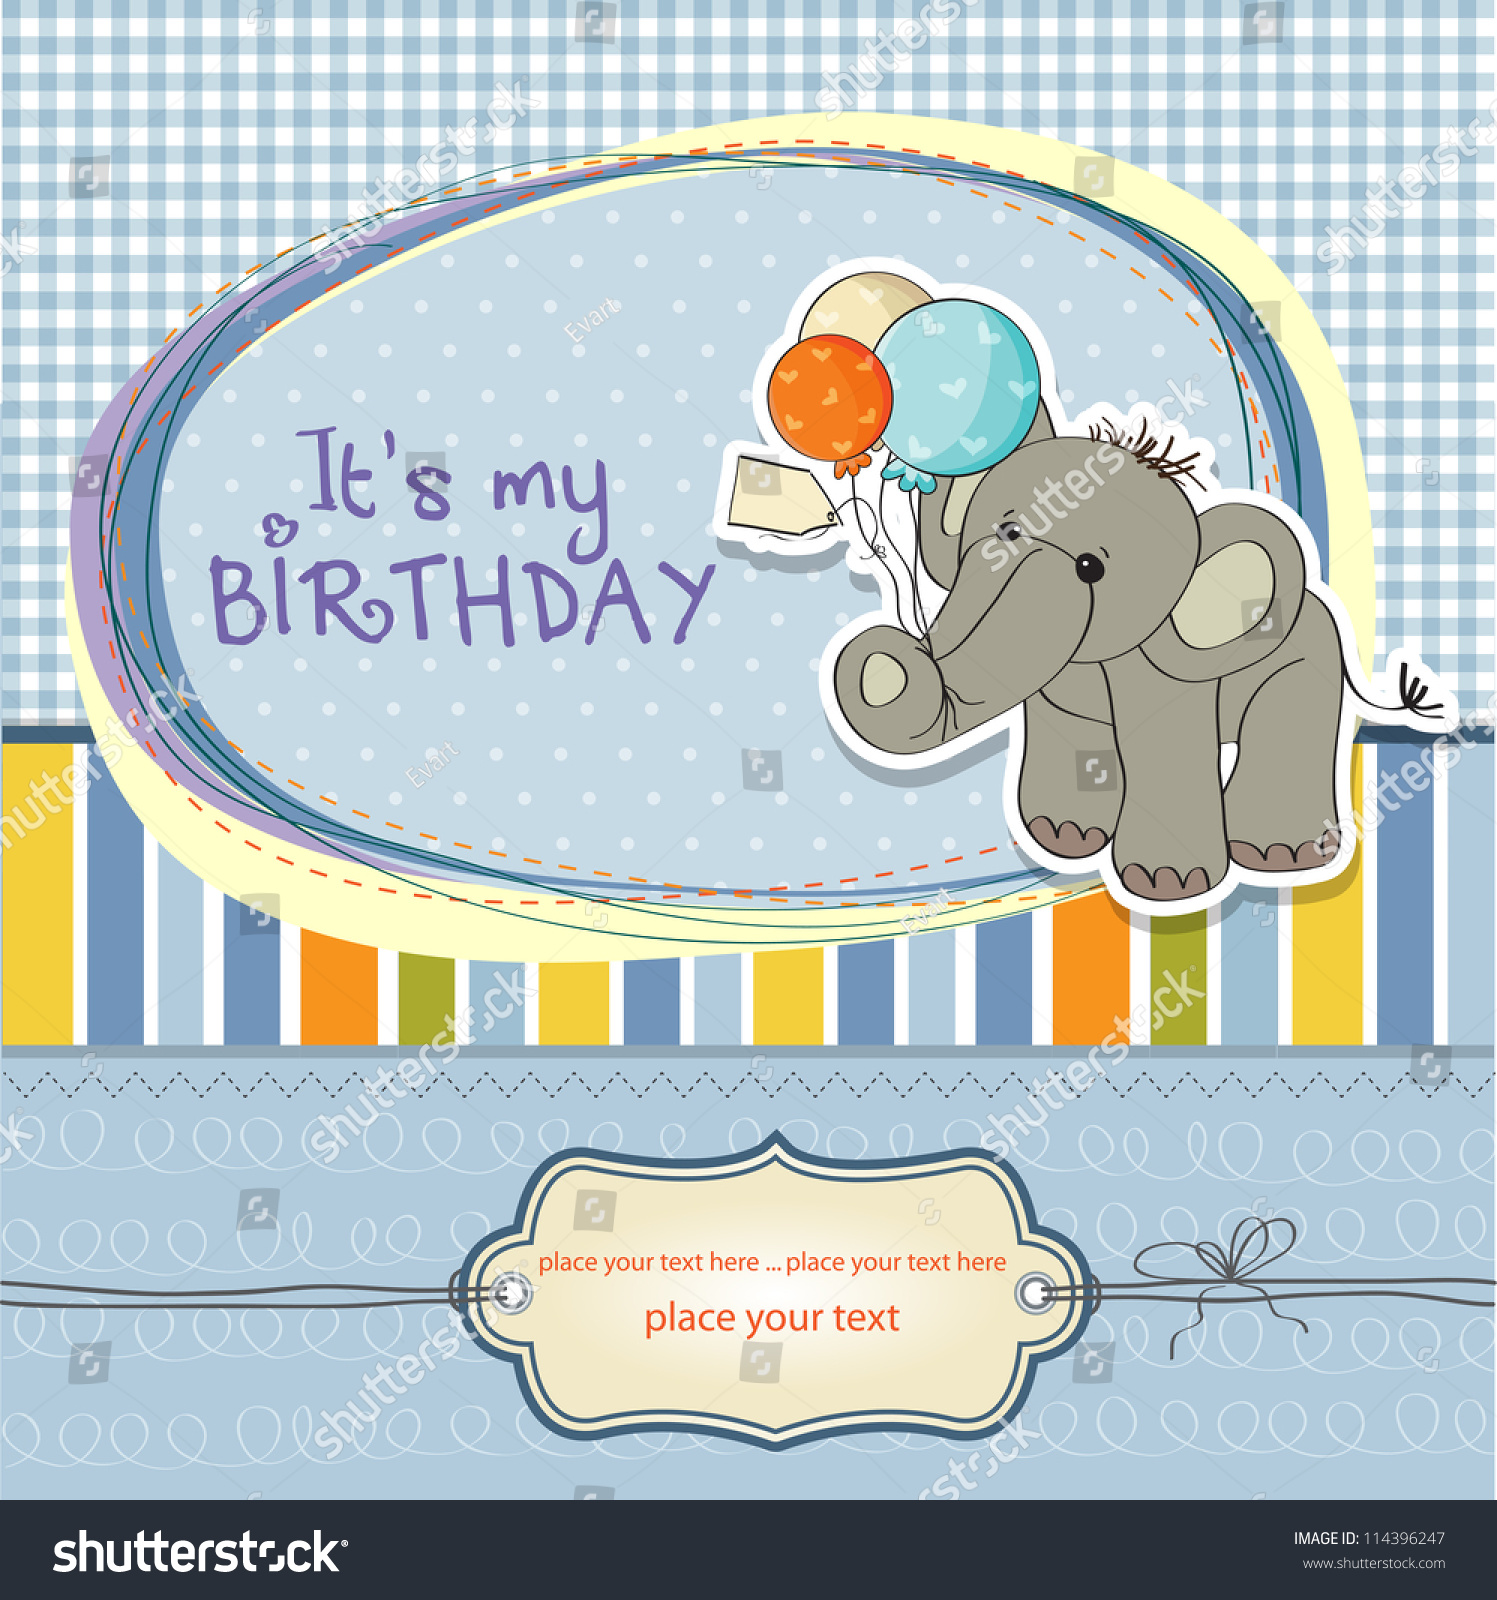 Permalink to Inspirational Boy Birthday Cards Images